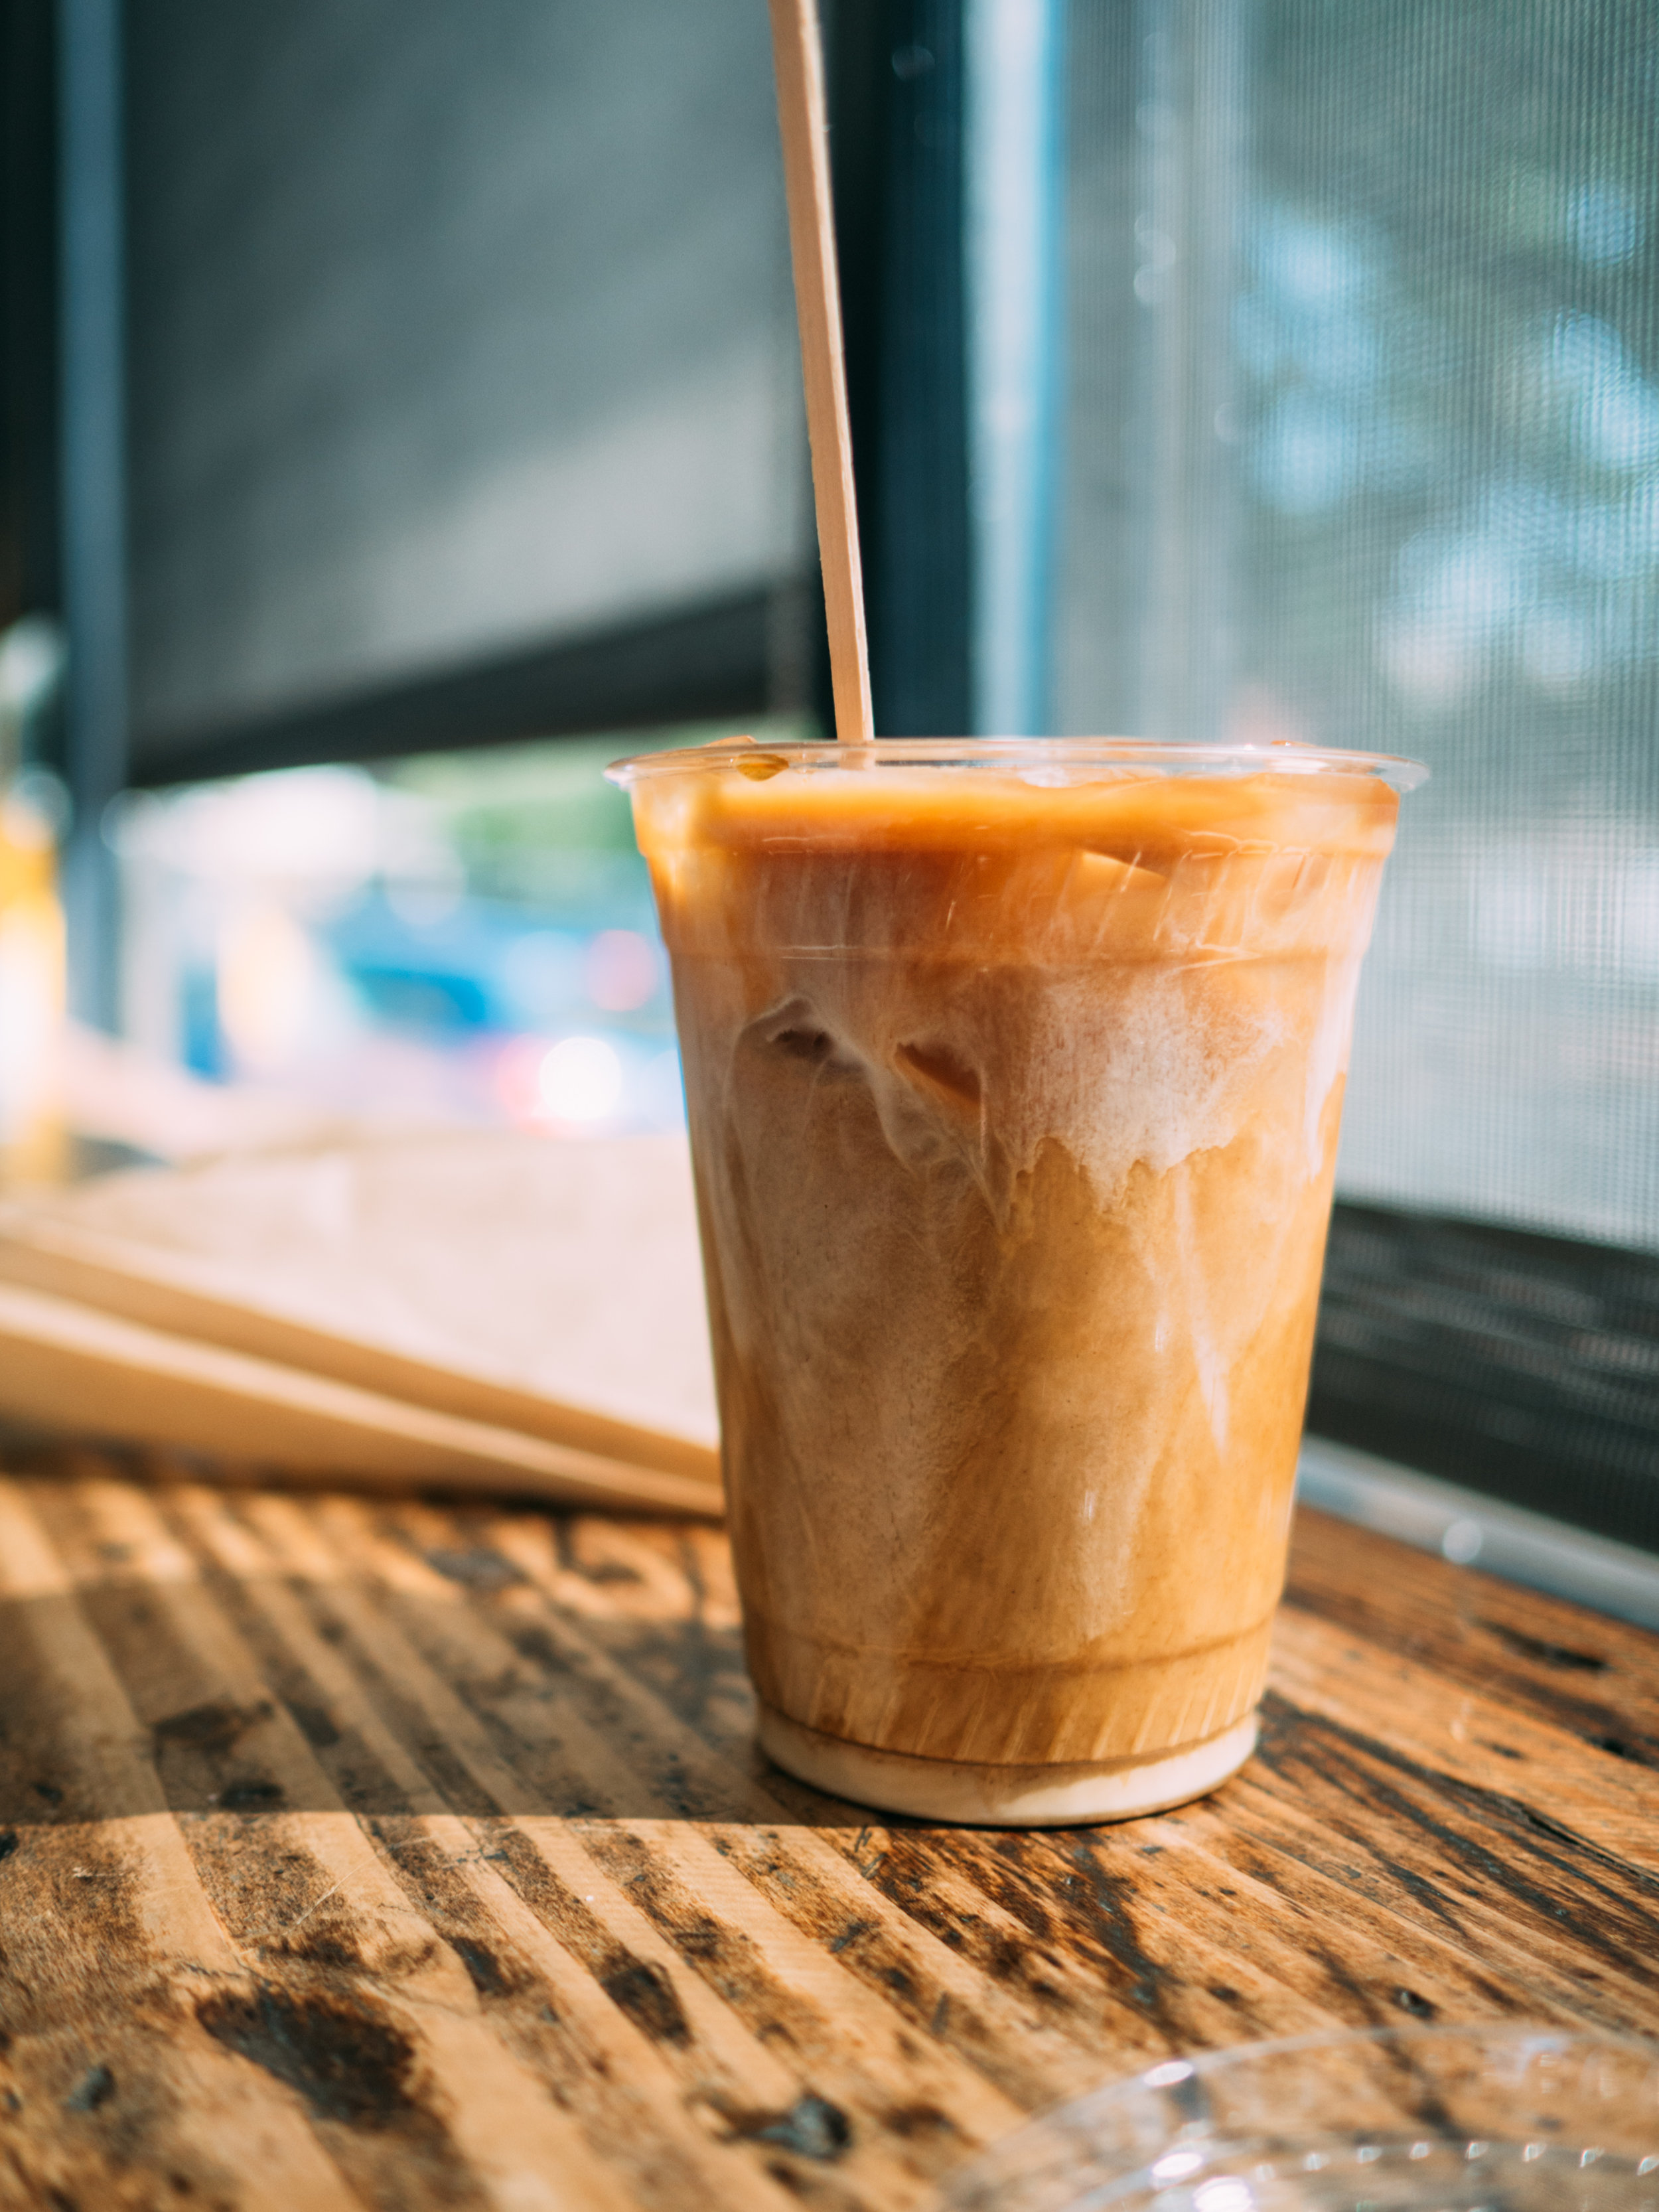 Iced coffee at The Filling Station